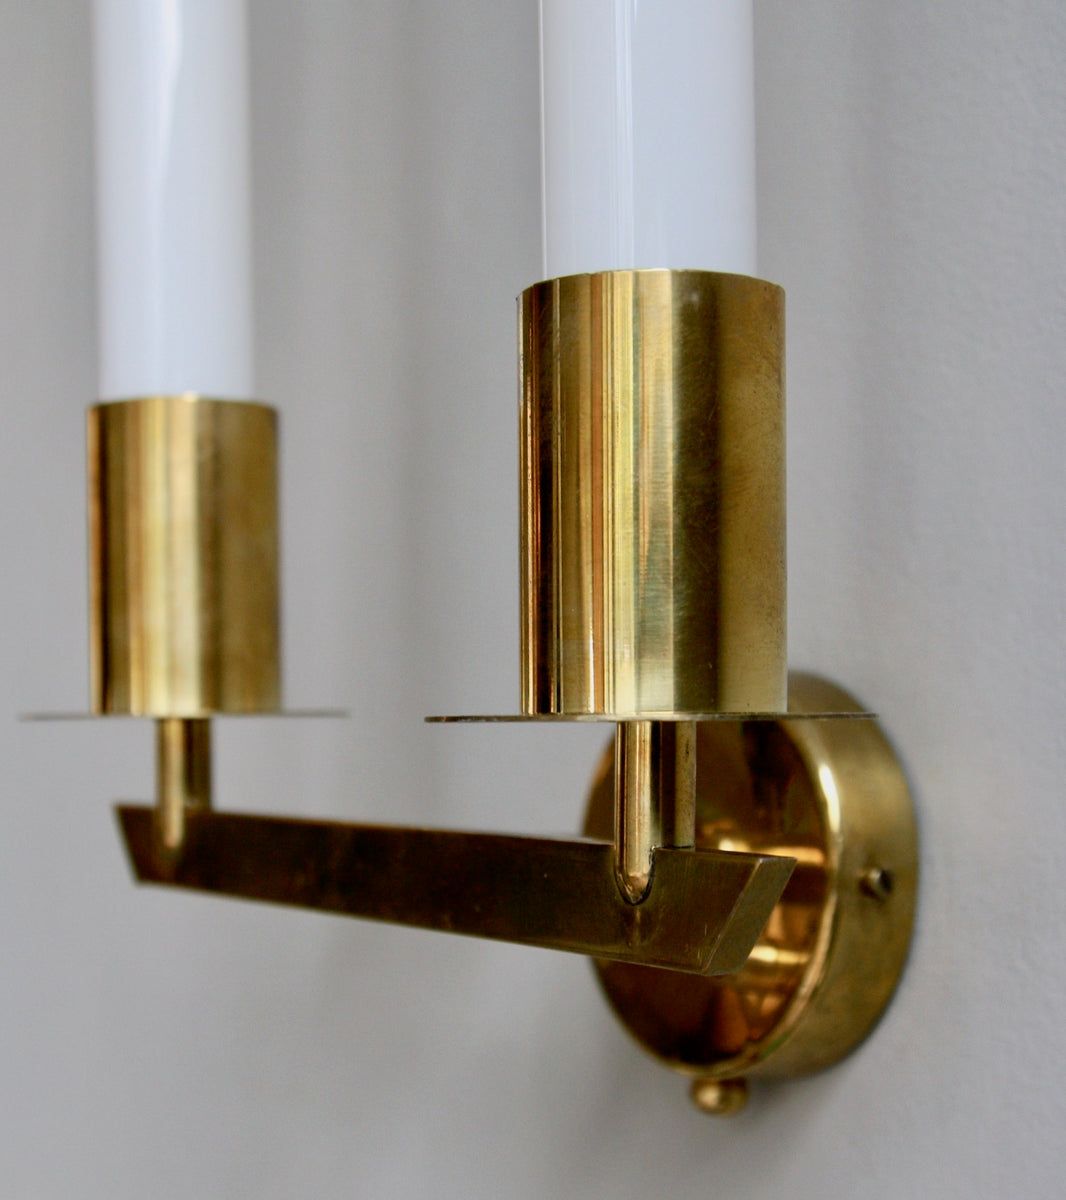 Pair of Brass Wall Sconces Itsu, Finland, C. 1950 - Image 4